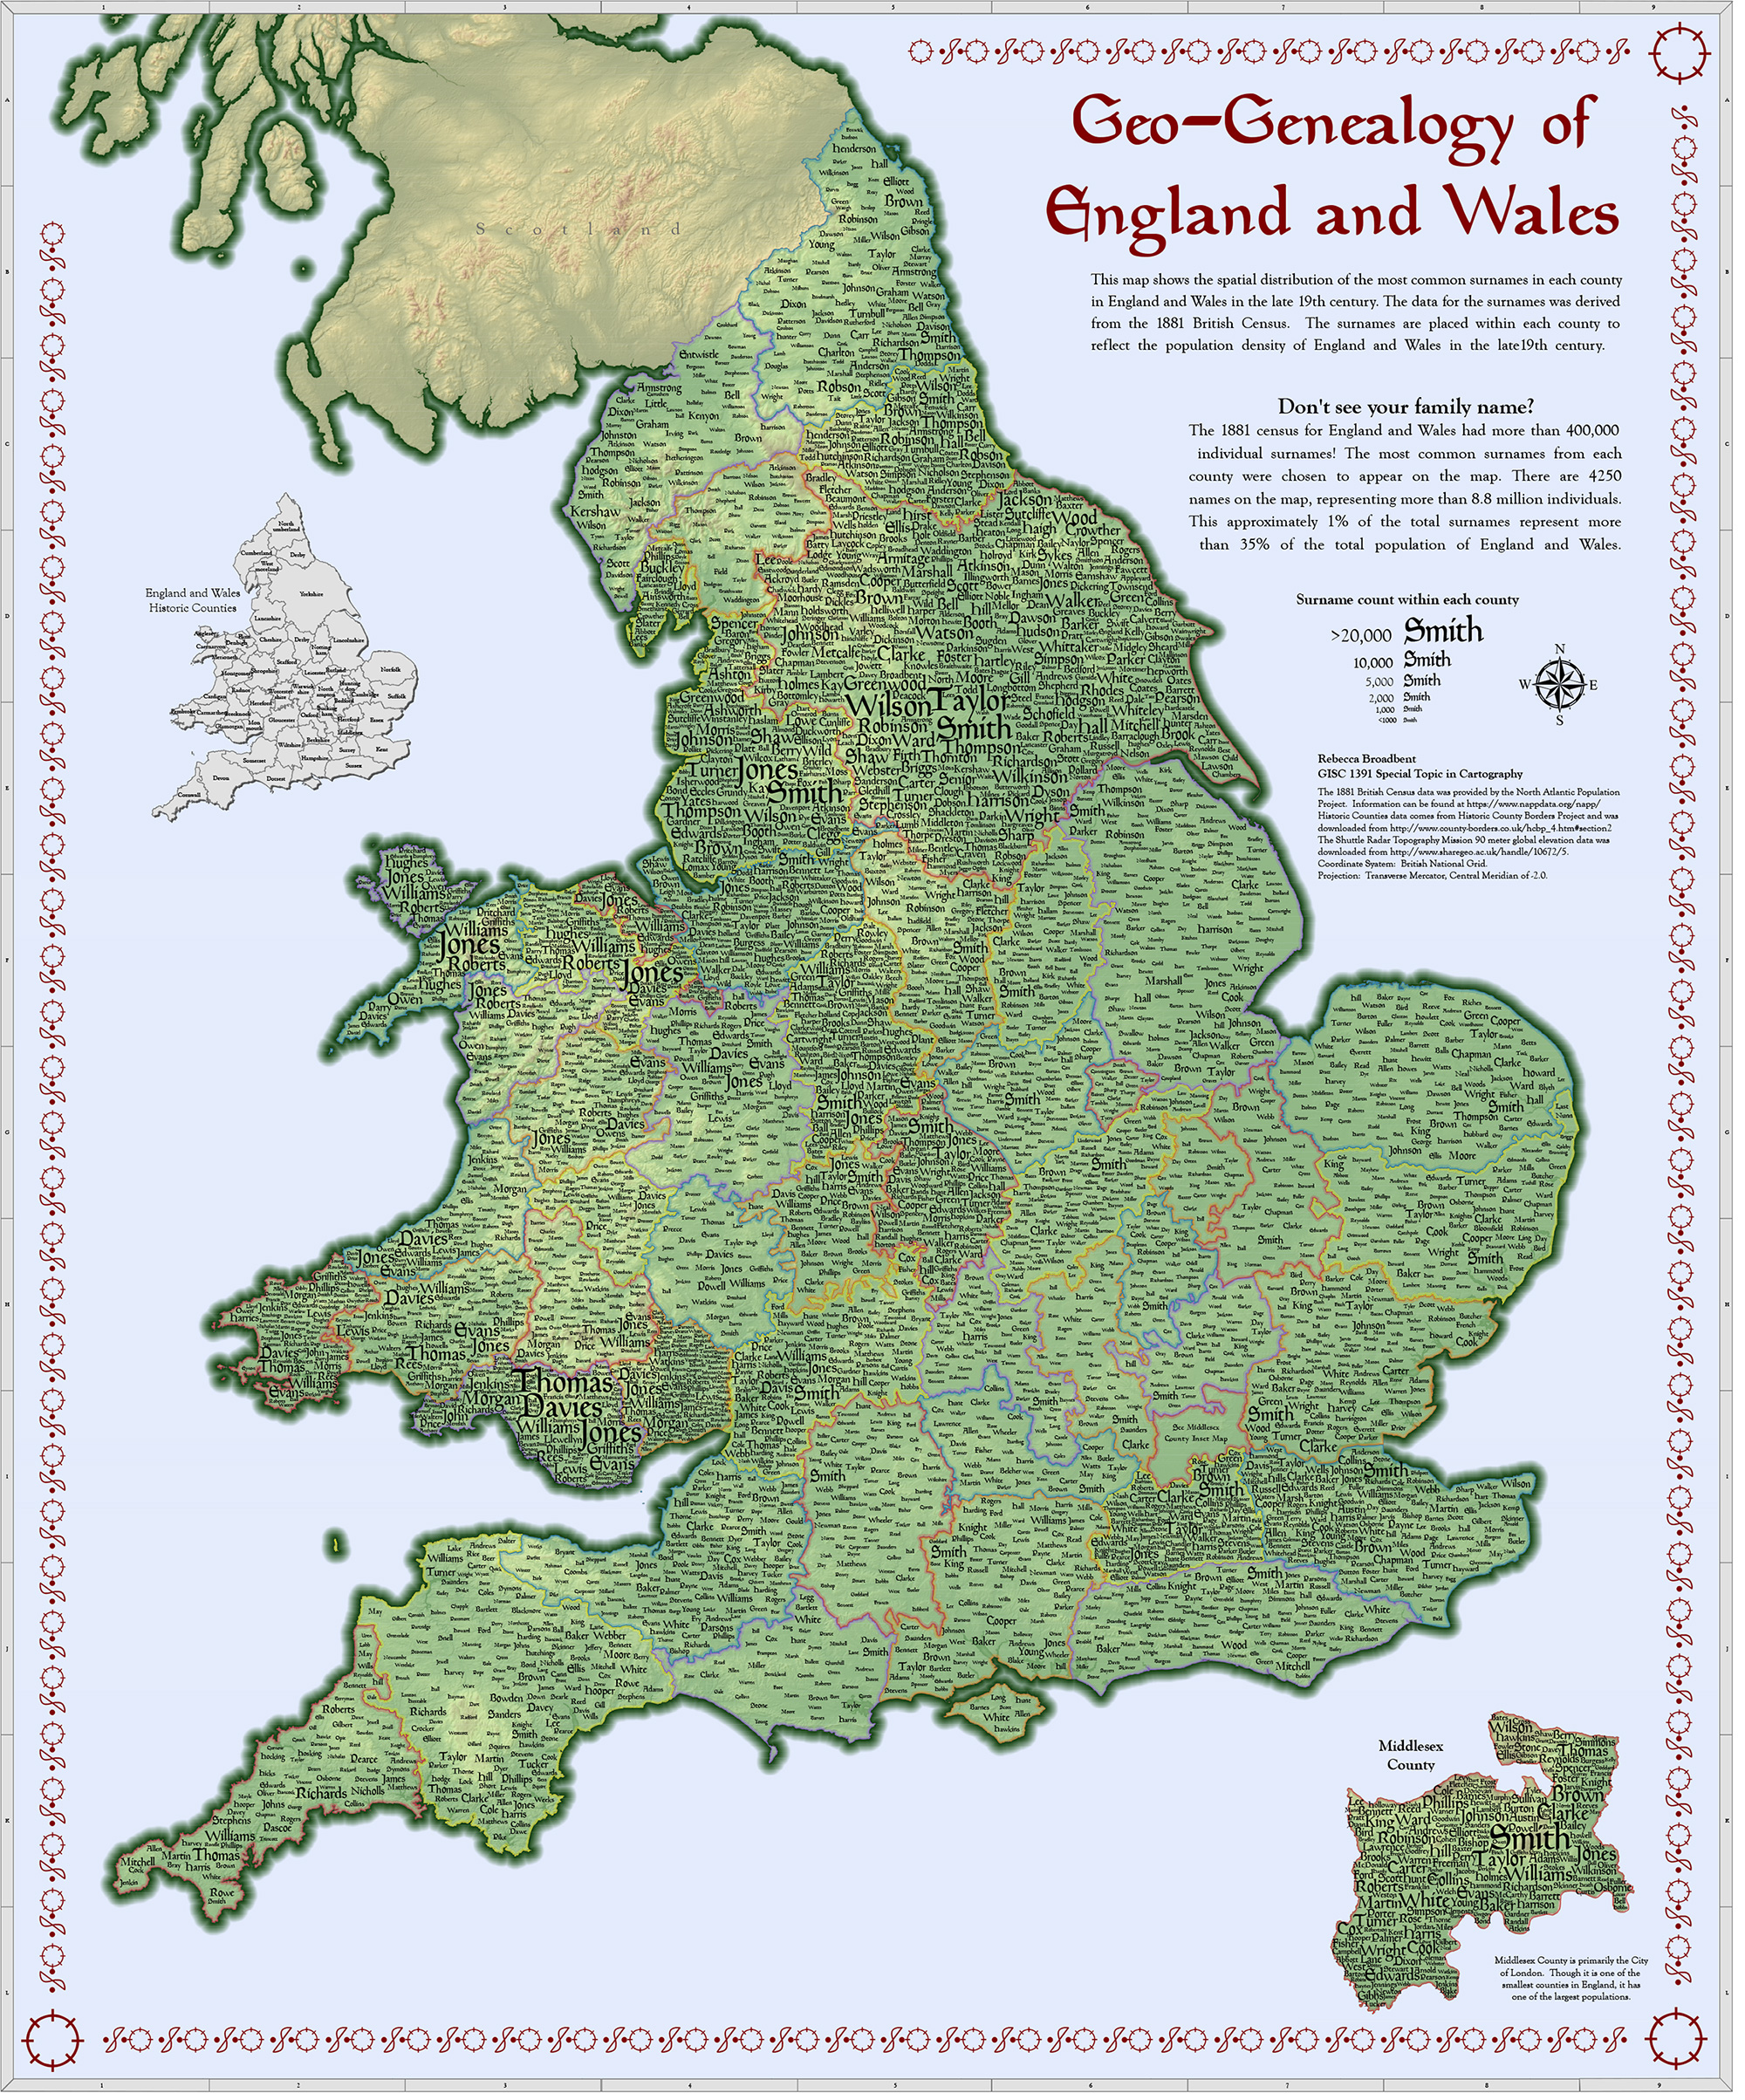 A large preview of the Geo-Genealogy of England and Wales image